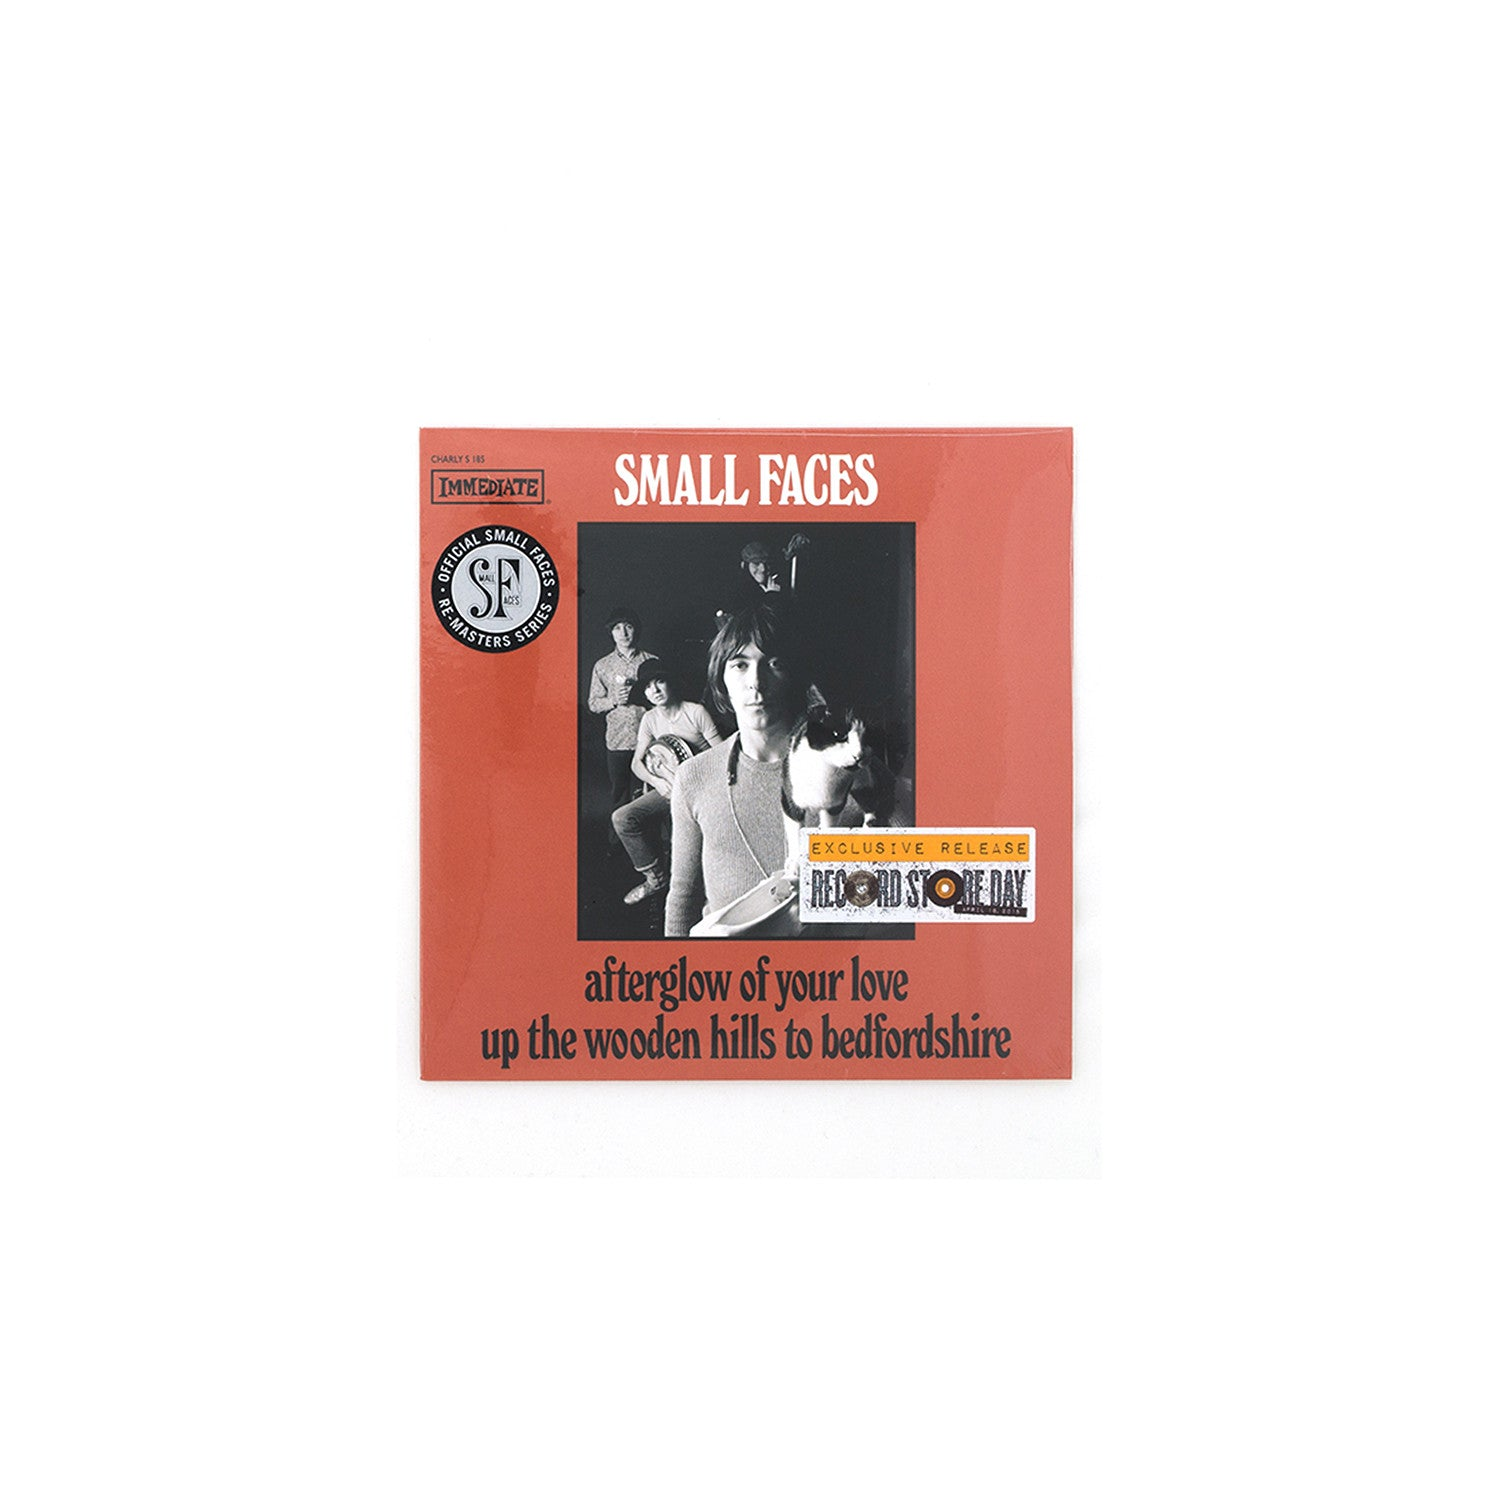 "Small Faces - Afterglow (Of Your Love) -Ltd- 7"" - Concrete"